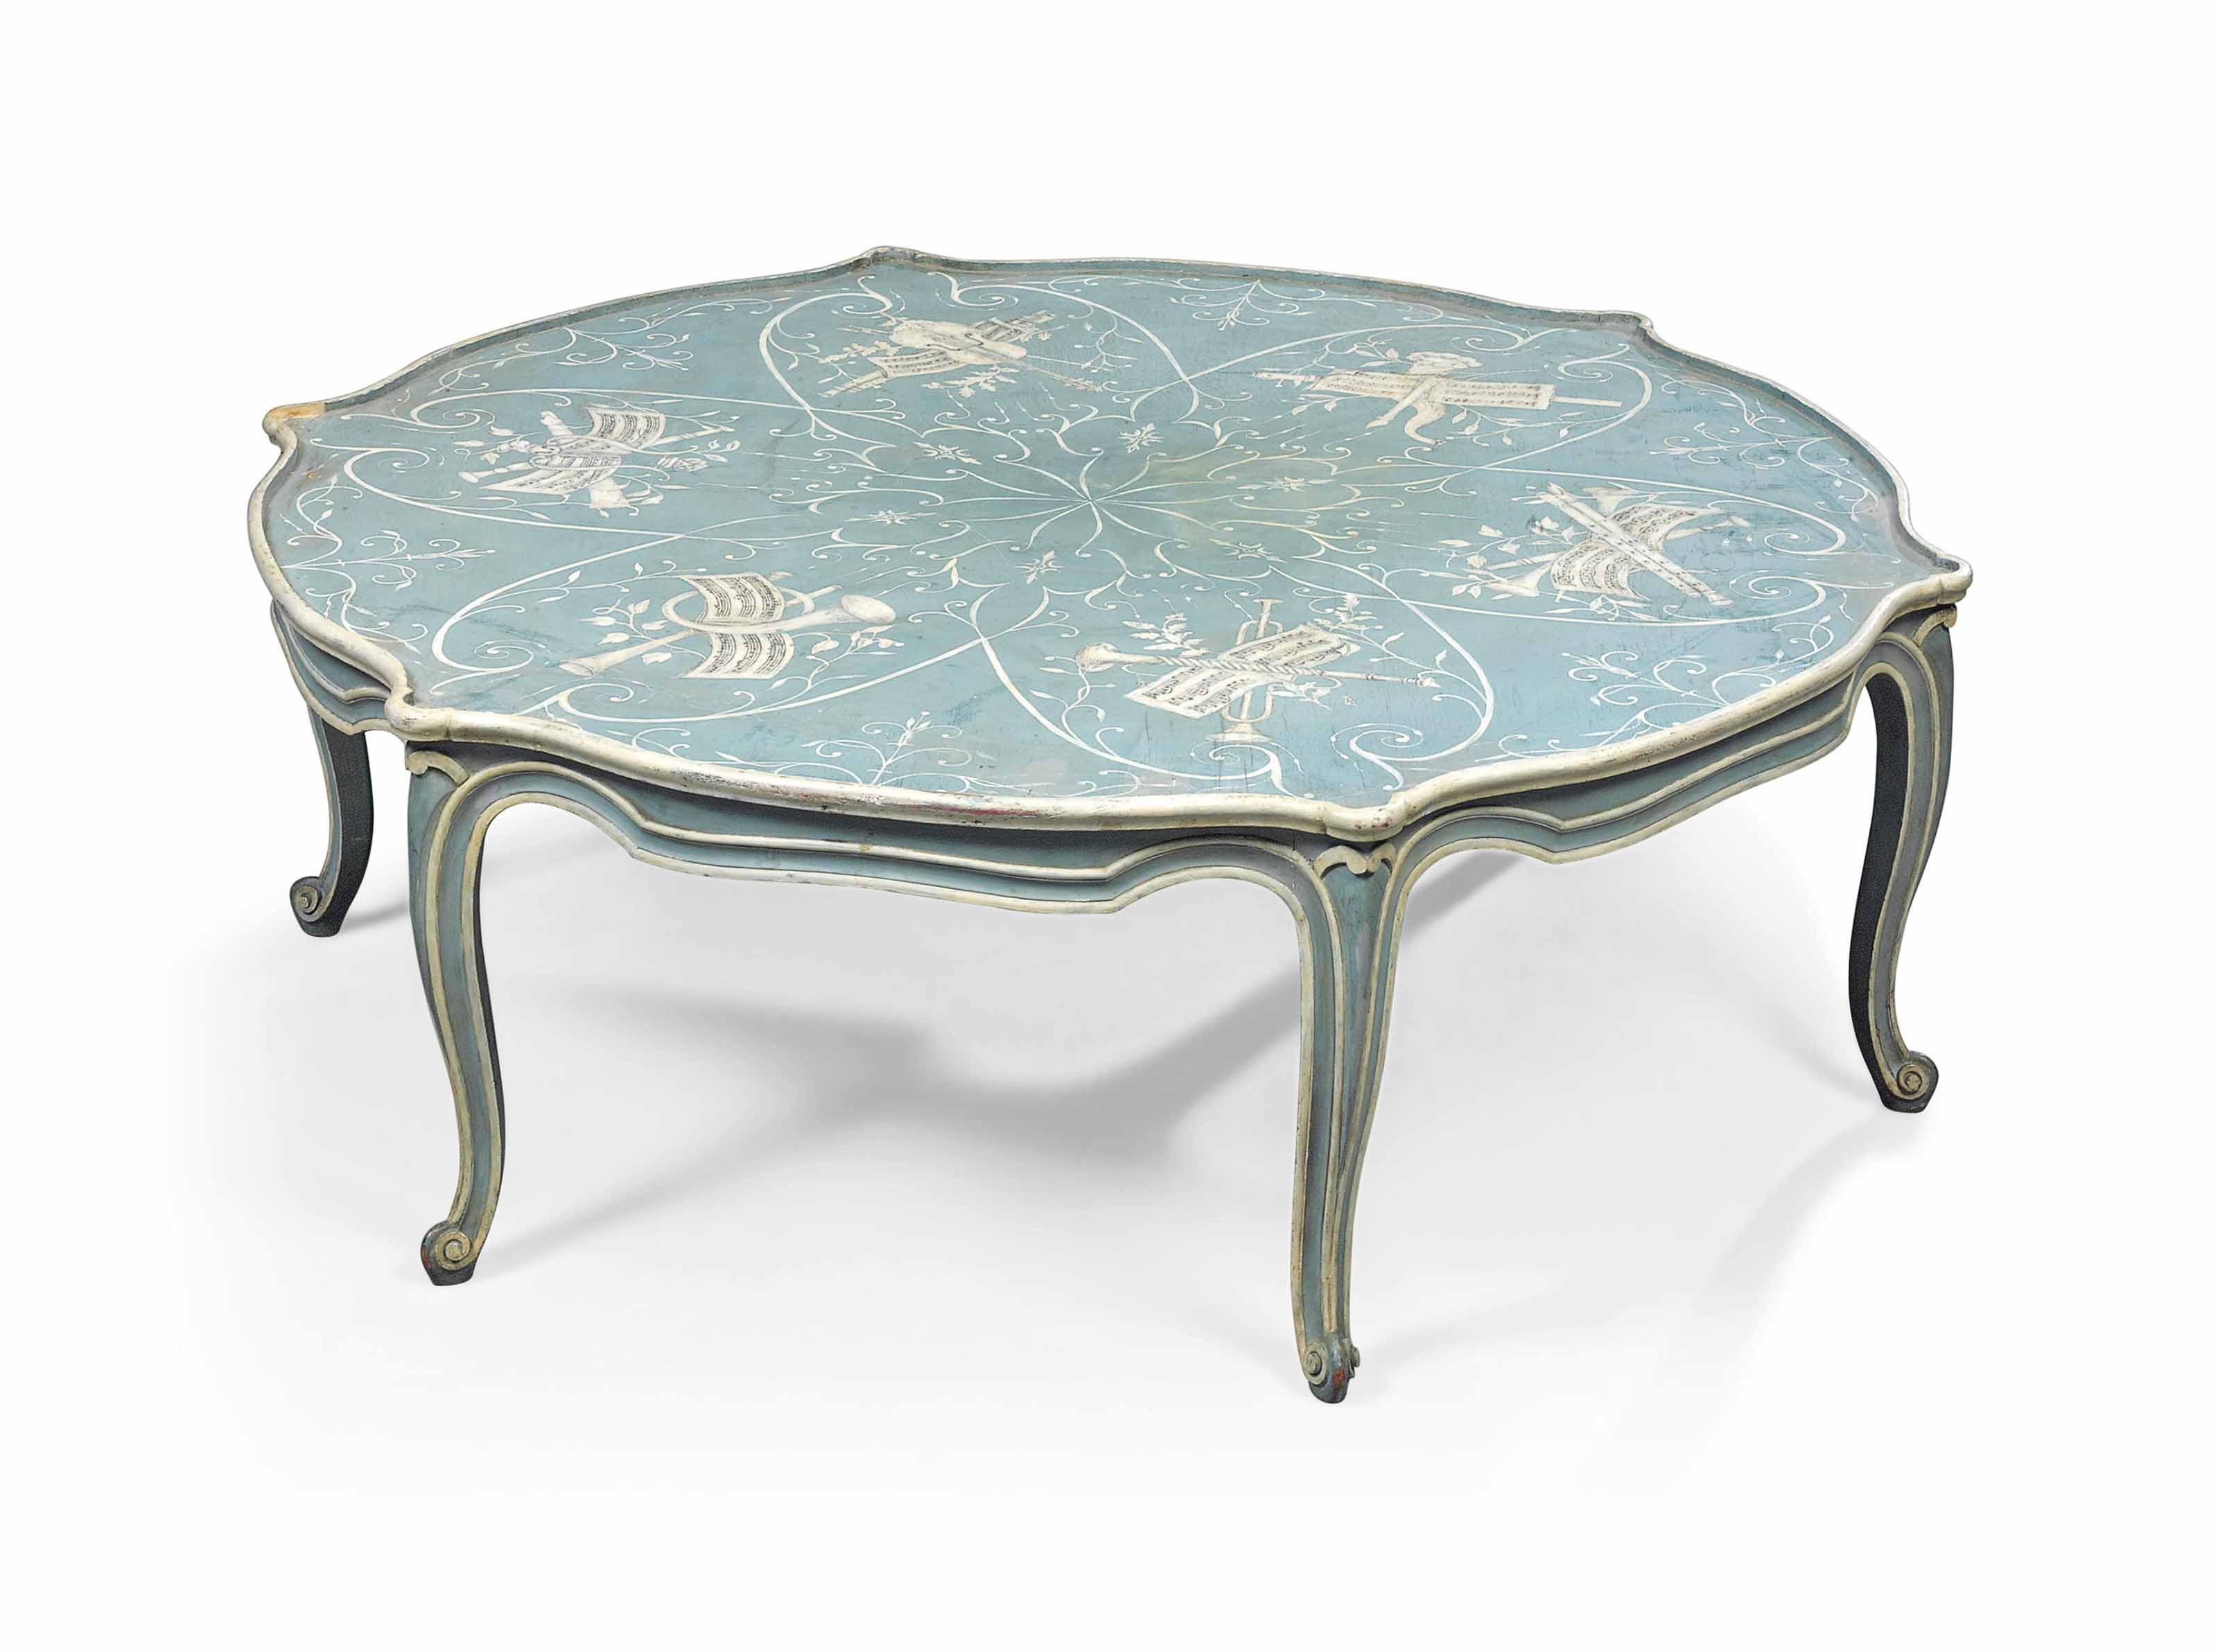 A FRENCH BLUE AND WHITE PAINTED LOW TABLE